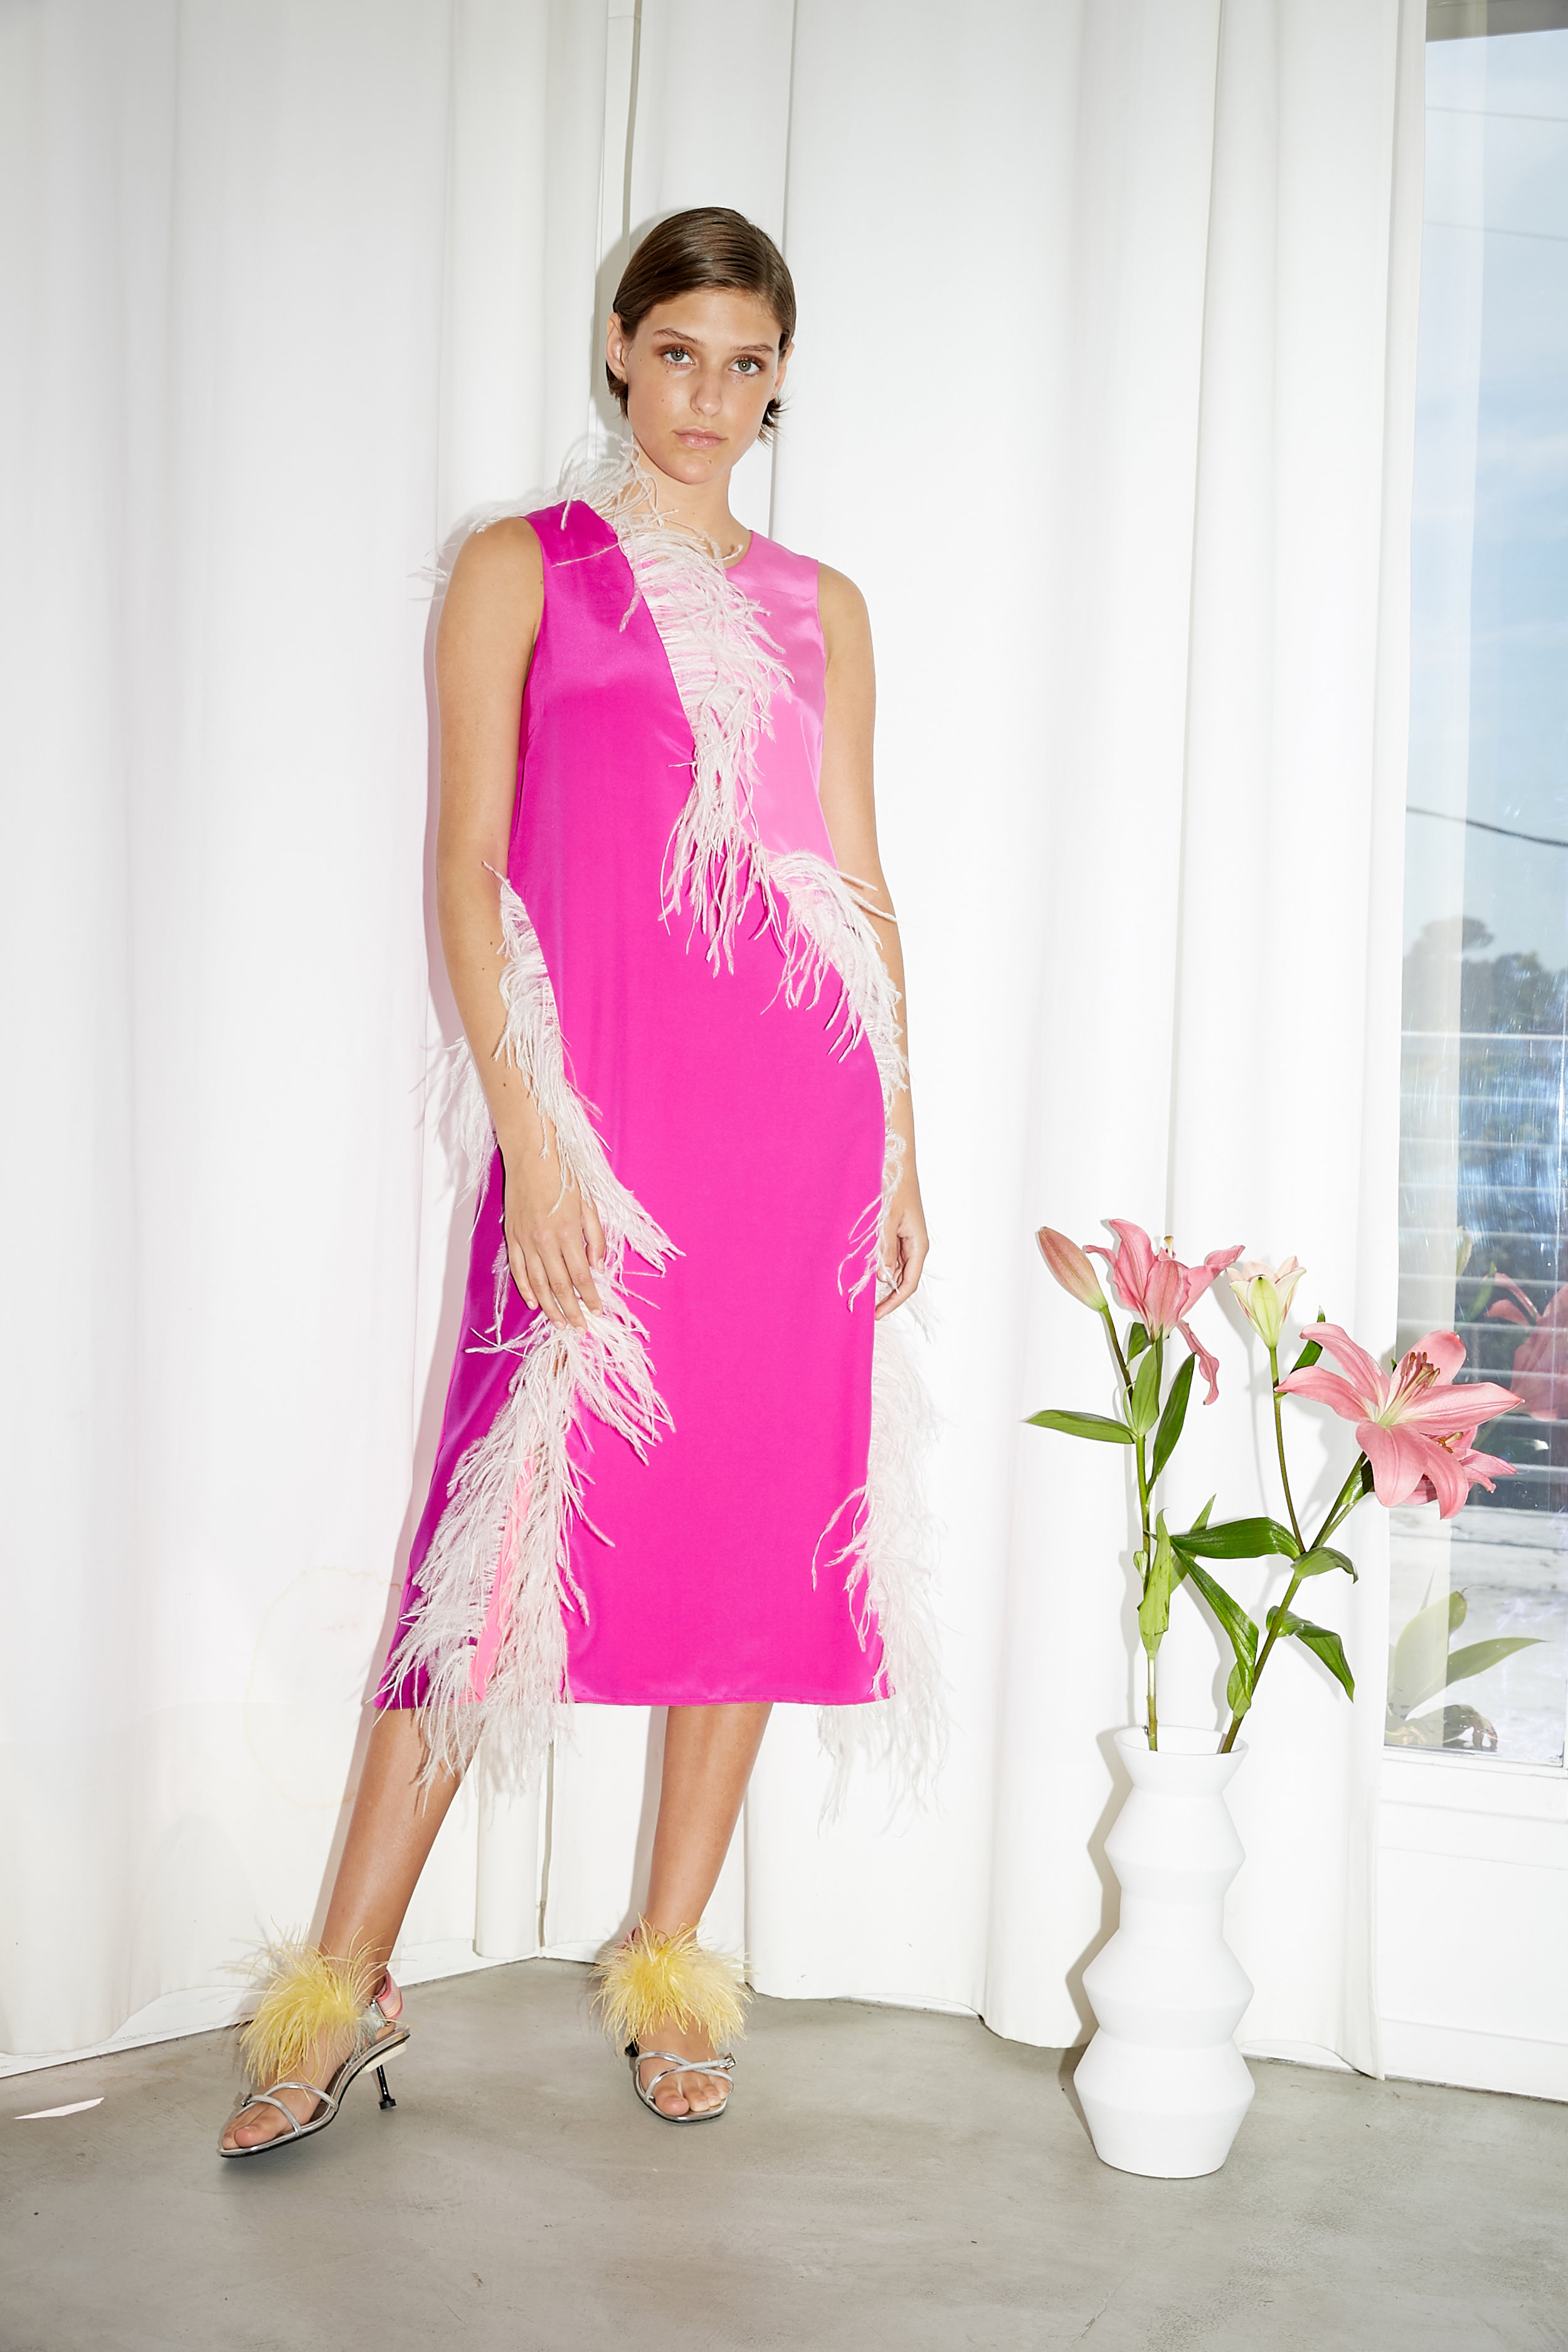 Model stands in pink color block dress with feather trim along seams